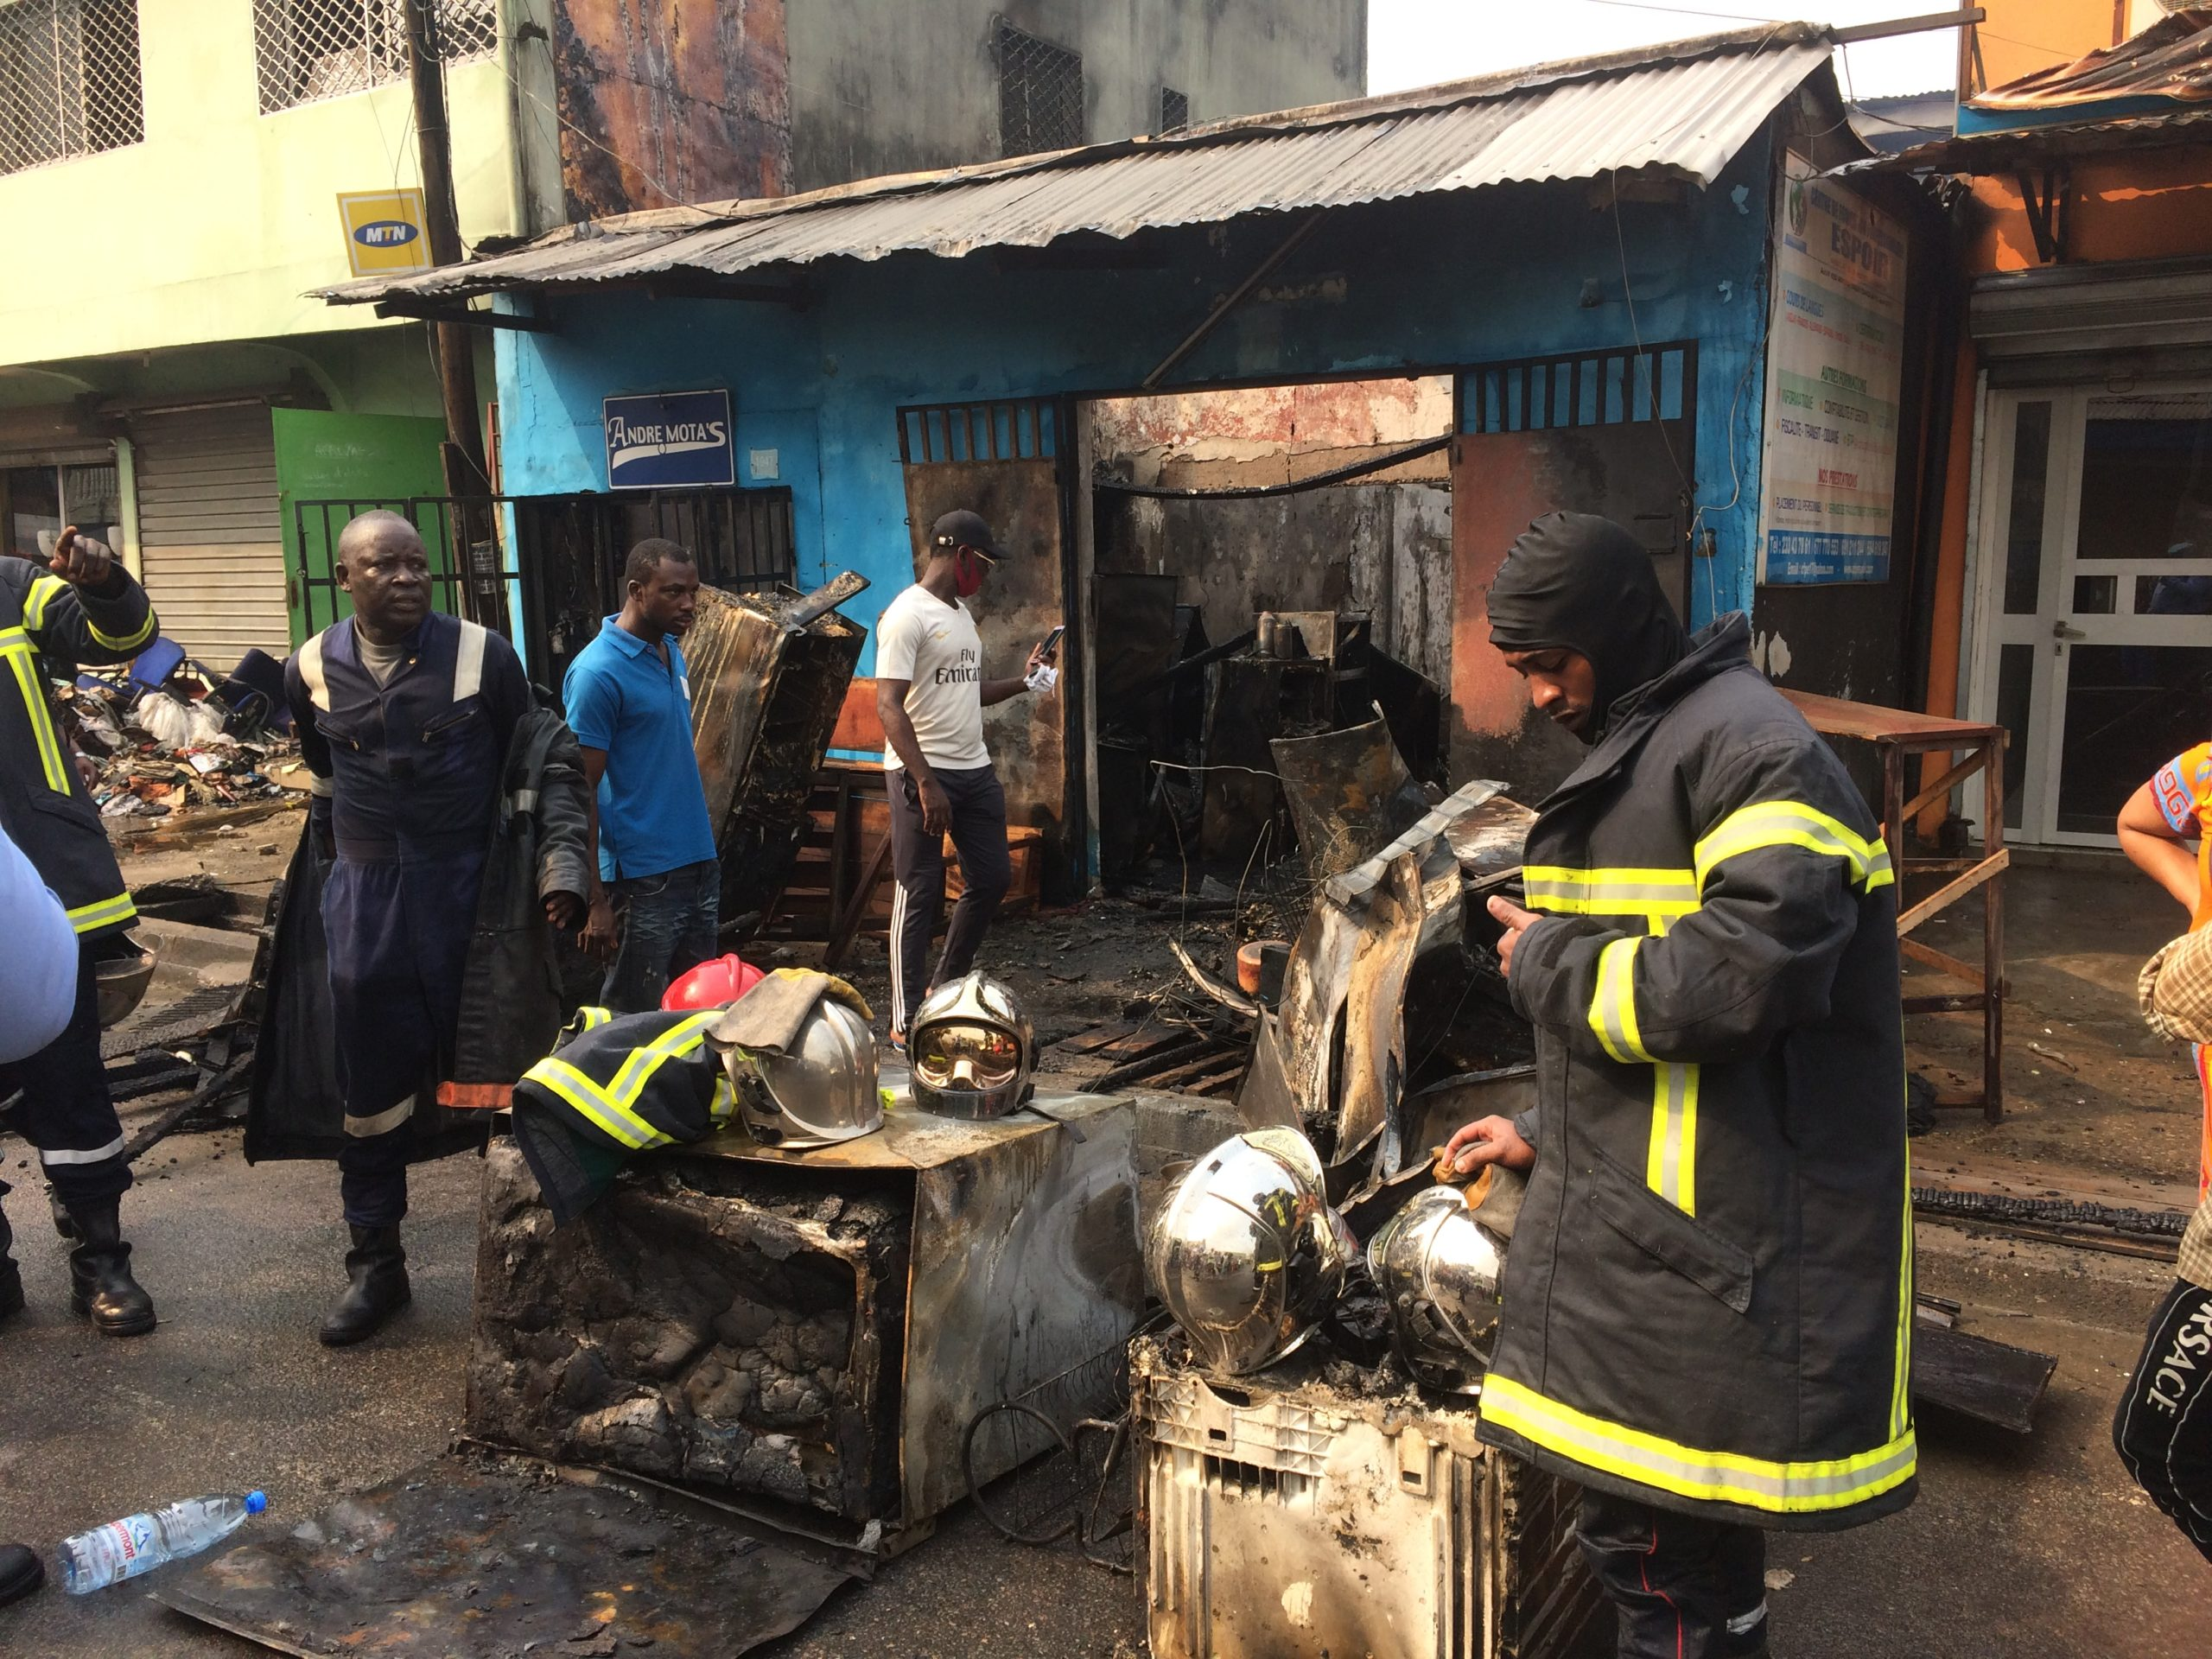 Douala,le vendredi 5 mars 2021. Quelques élements du Corps national des Sapeurs-pompiers après l'operation d'extintion des flammes. Photo: Moustapha Oumarou